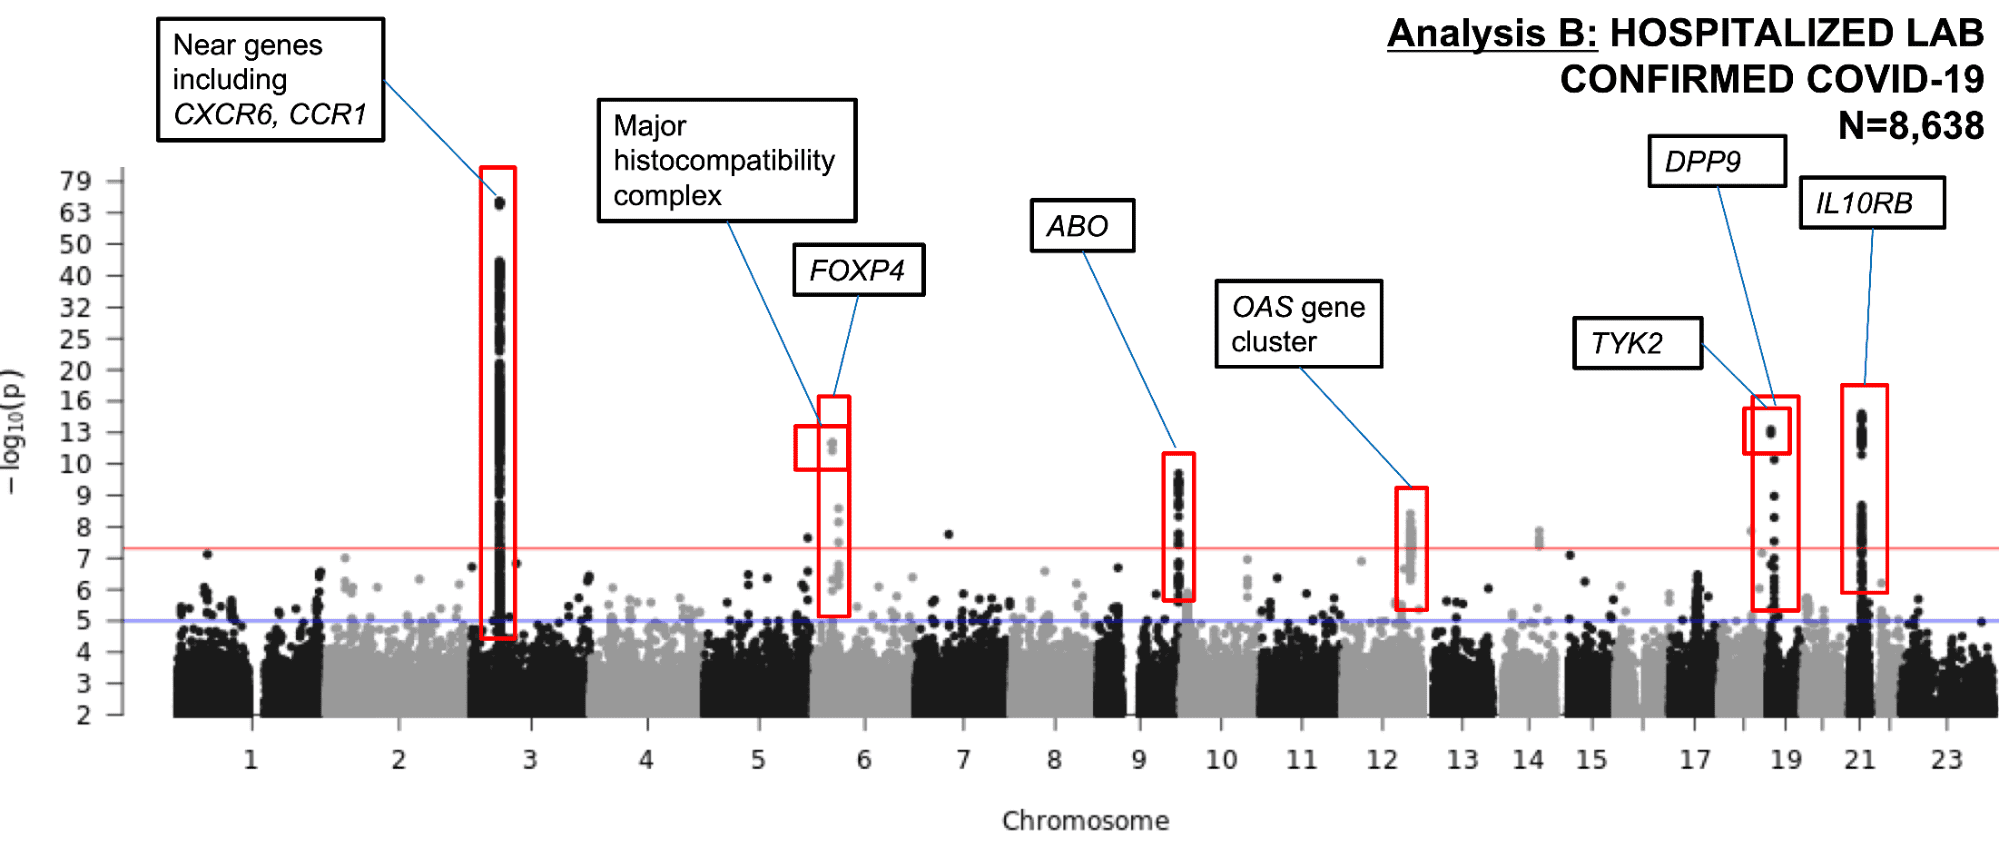 A Manhattan plot showing the GWAS results for COVID-19 Severity in 8,638 hospitalized COVID-19 cases and 1.7 million controls